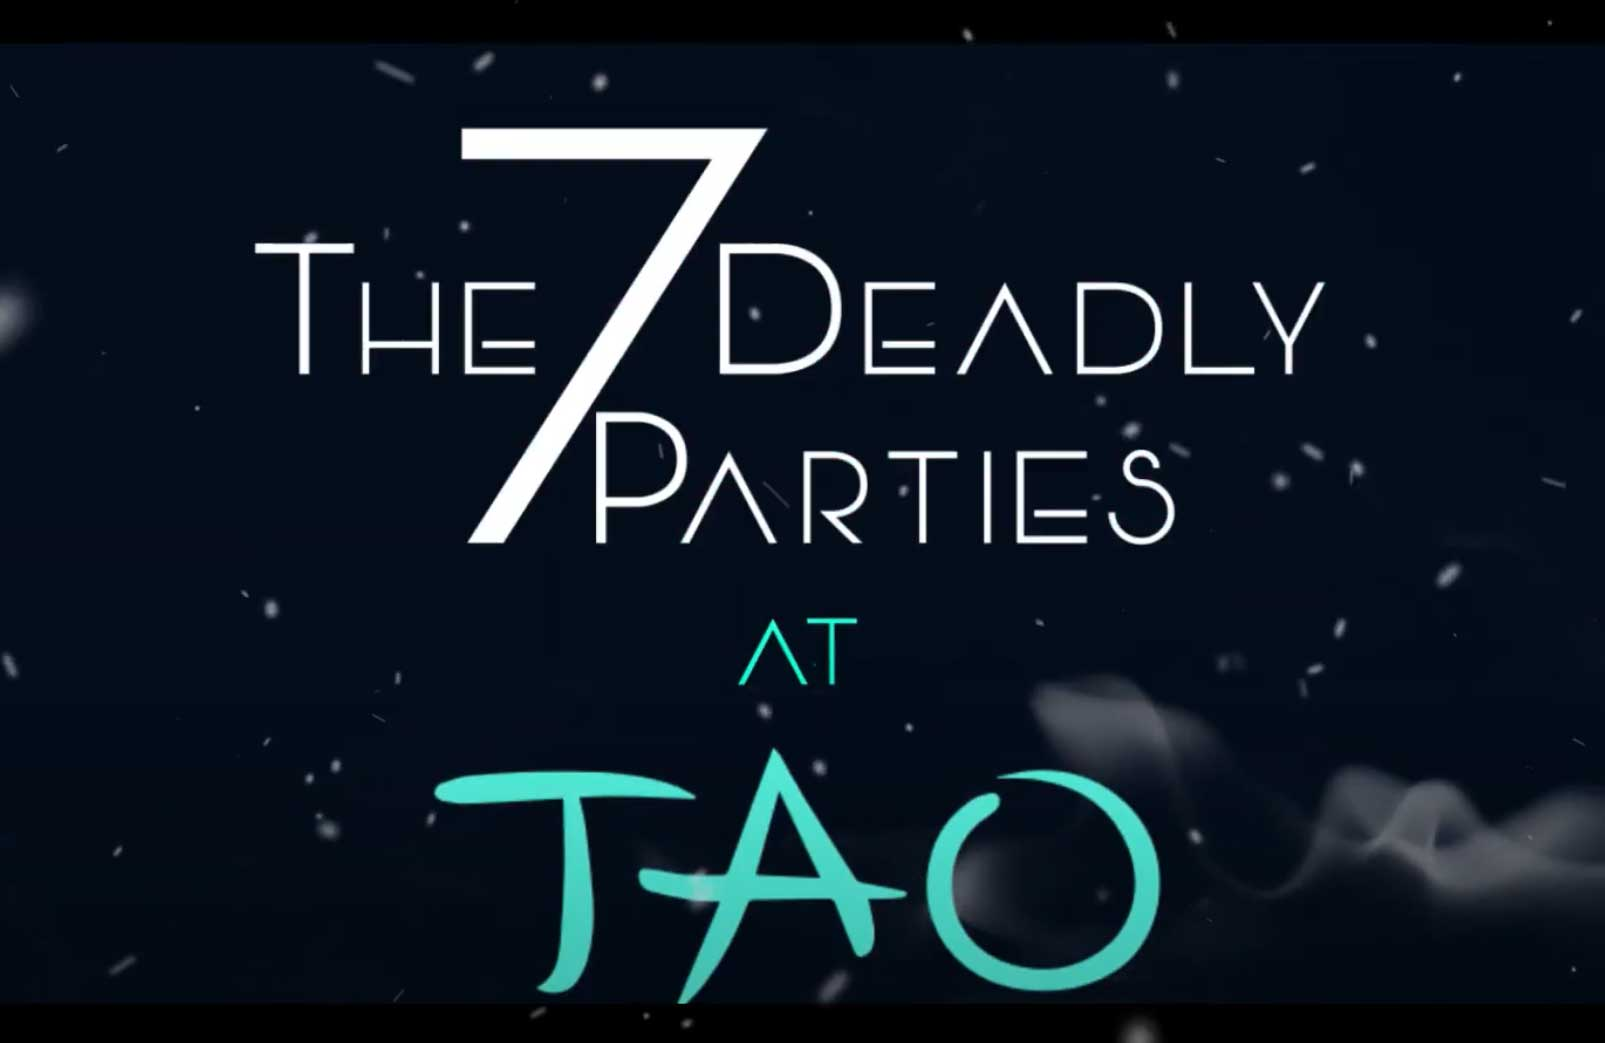 Seven Deadly Parties Promo Party Event Ad